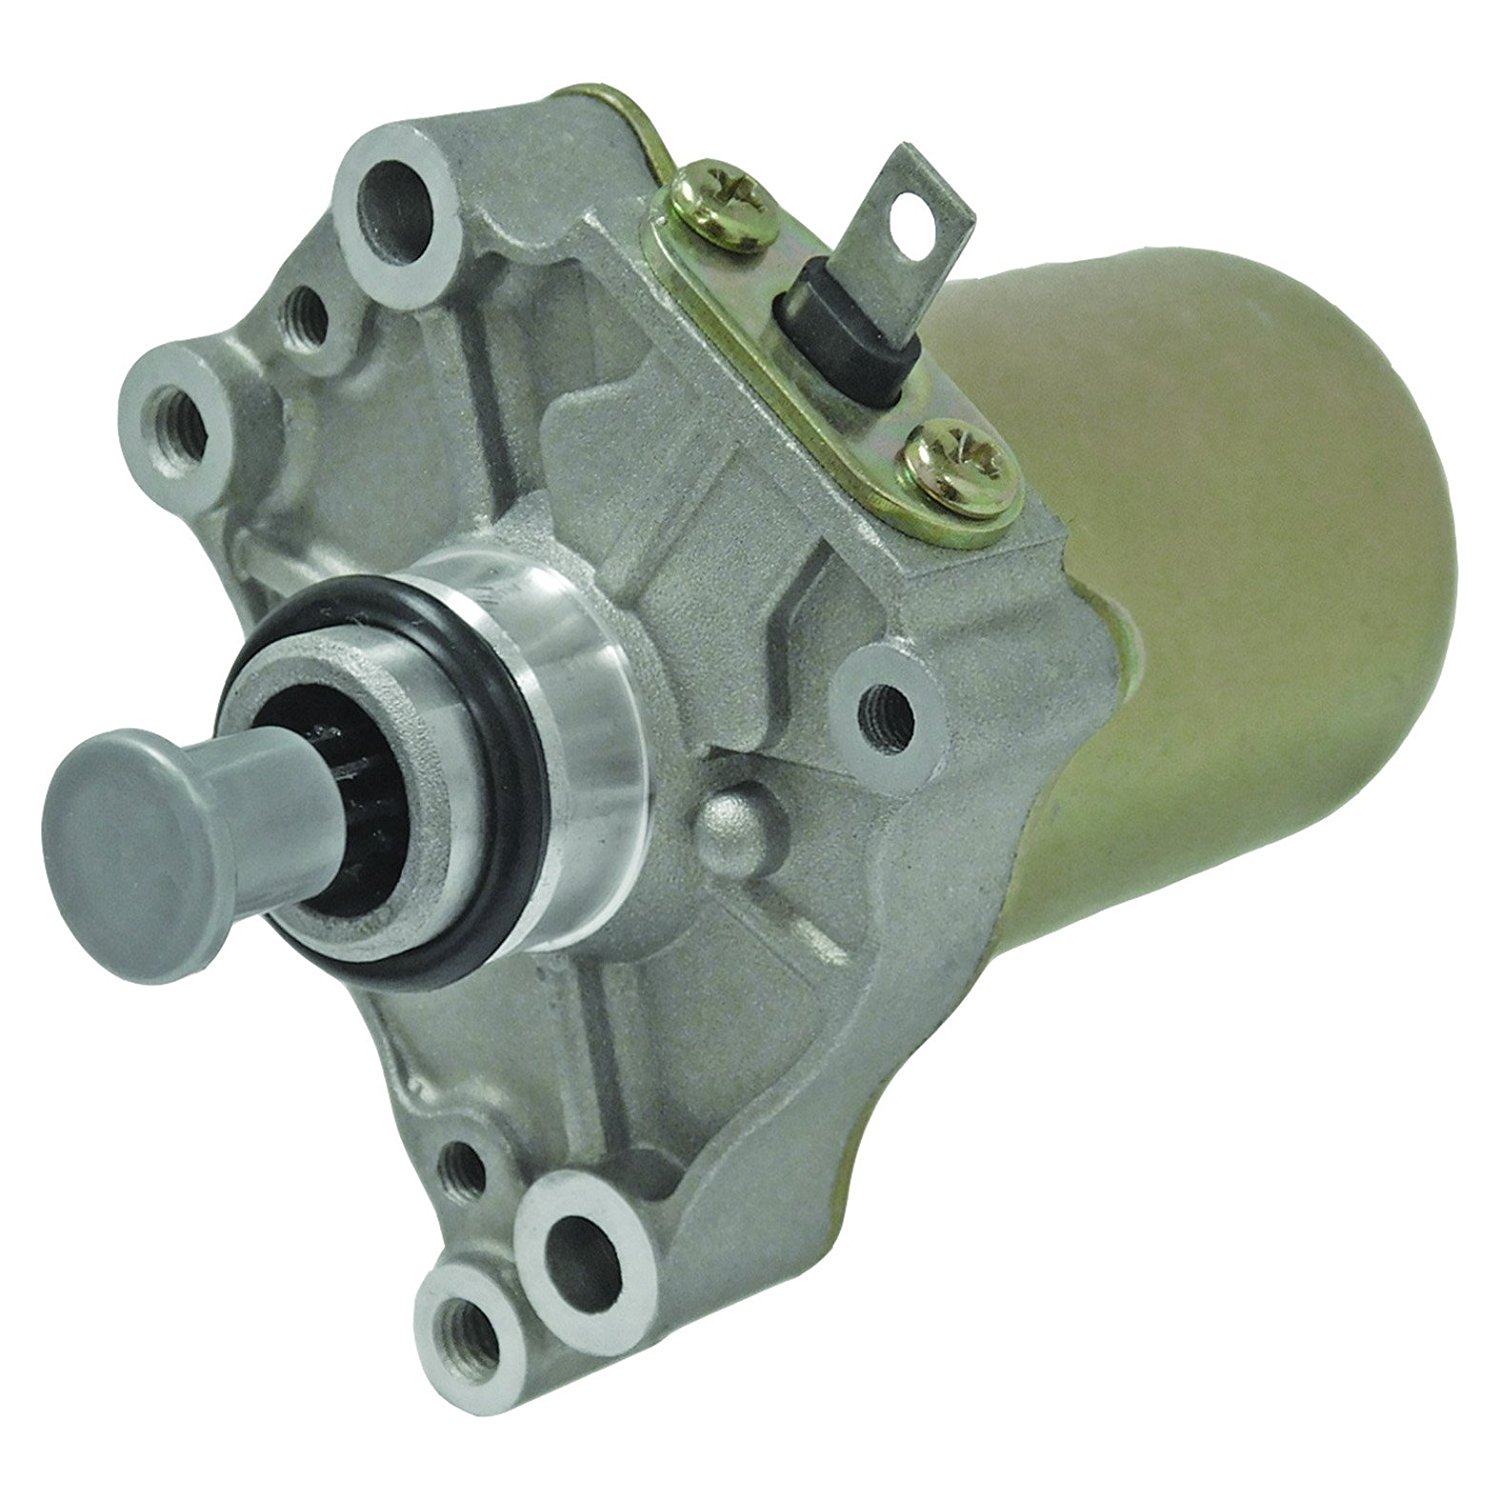 New Starter For Aprilia Motorcycle Classic 125, RS 125 , Tuono 125, Scooter Extreme 125, Replica 125, 0294800, AP029480